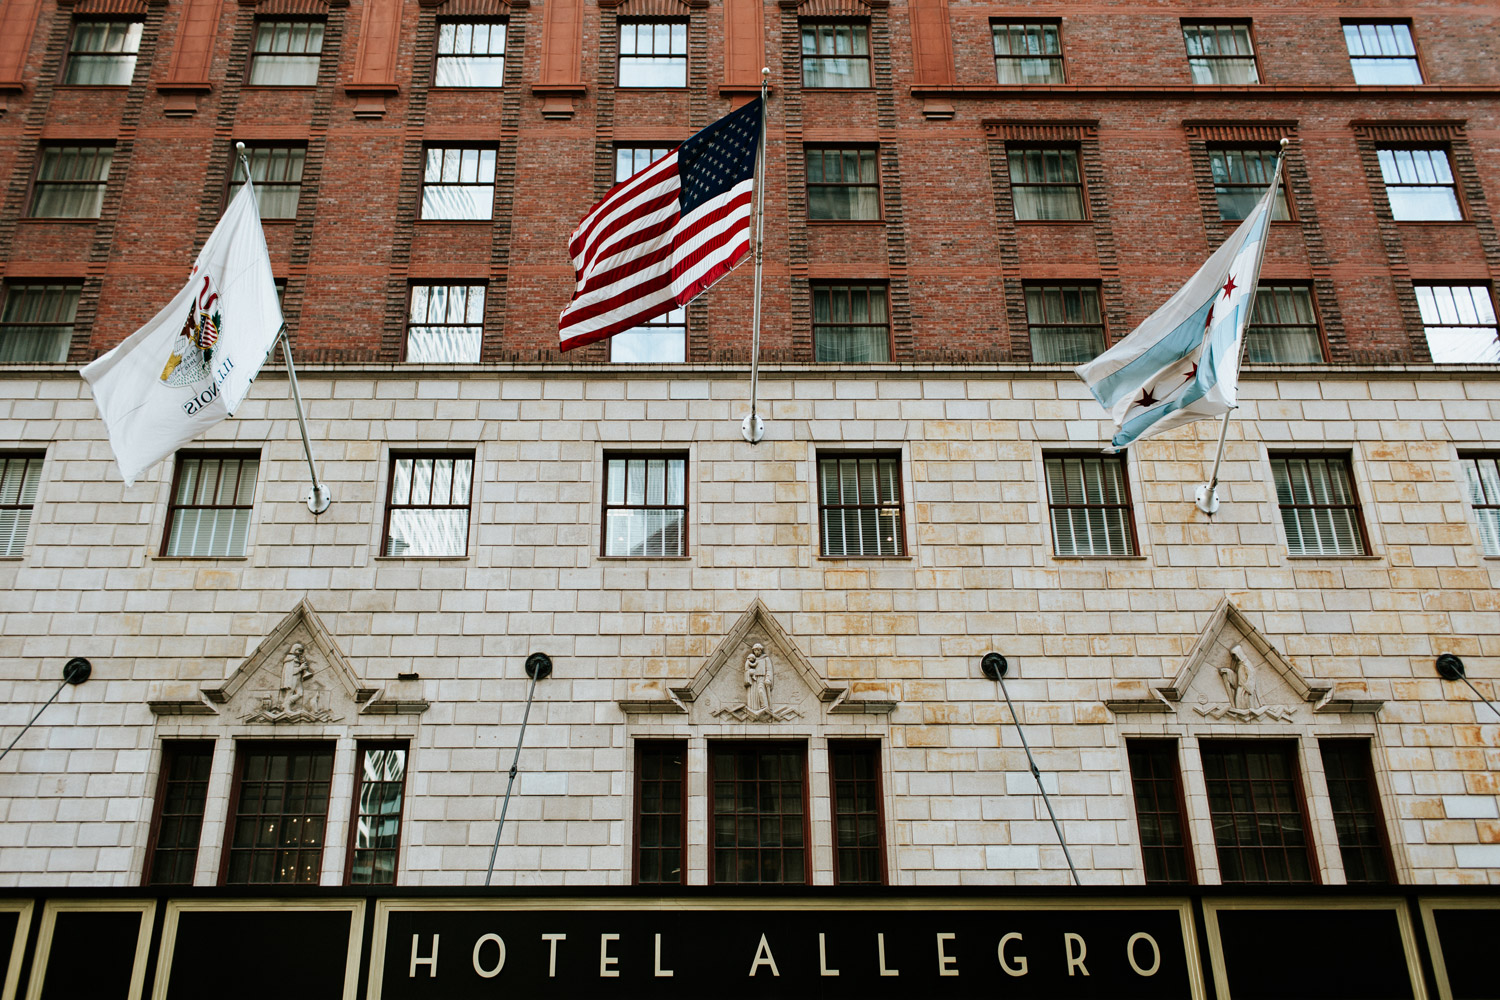 Picture of Hotel Allegro in Chicago